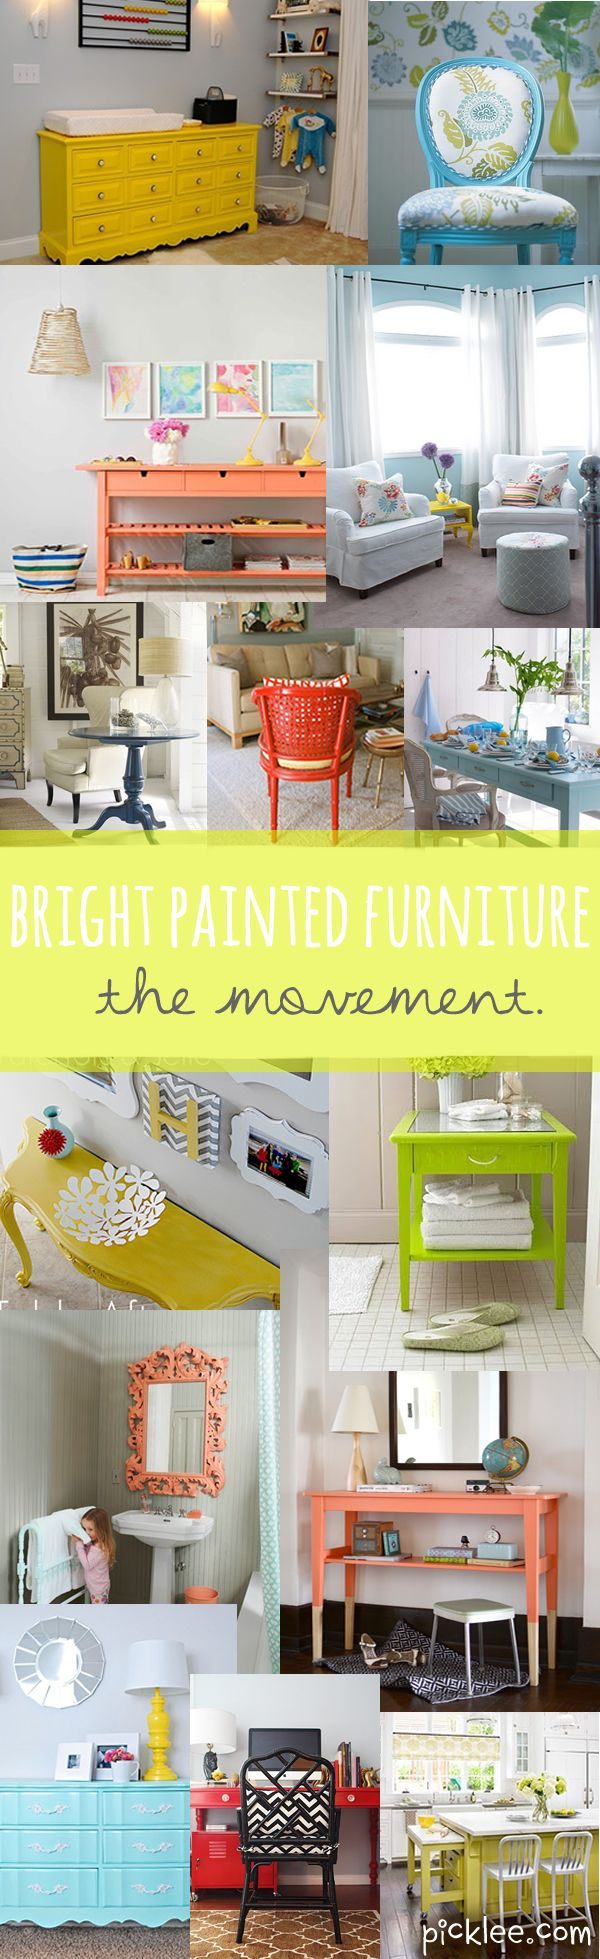 Tons of inspiration to paint furniture: Bright Furniture, Furniture Re Do, Idea, Furniture Makeover, Painting Furniture, Furniture Redo, Bright Painted Furniture, Diy Craft, Paint Furniture Bright